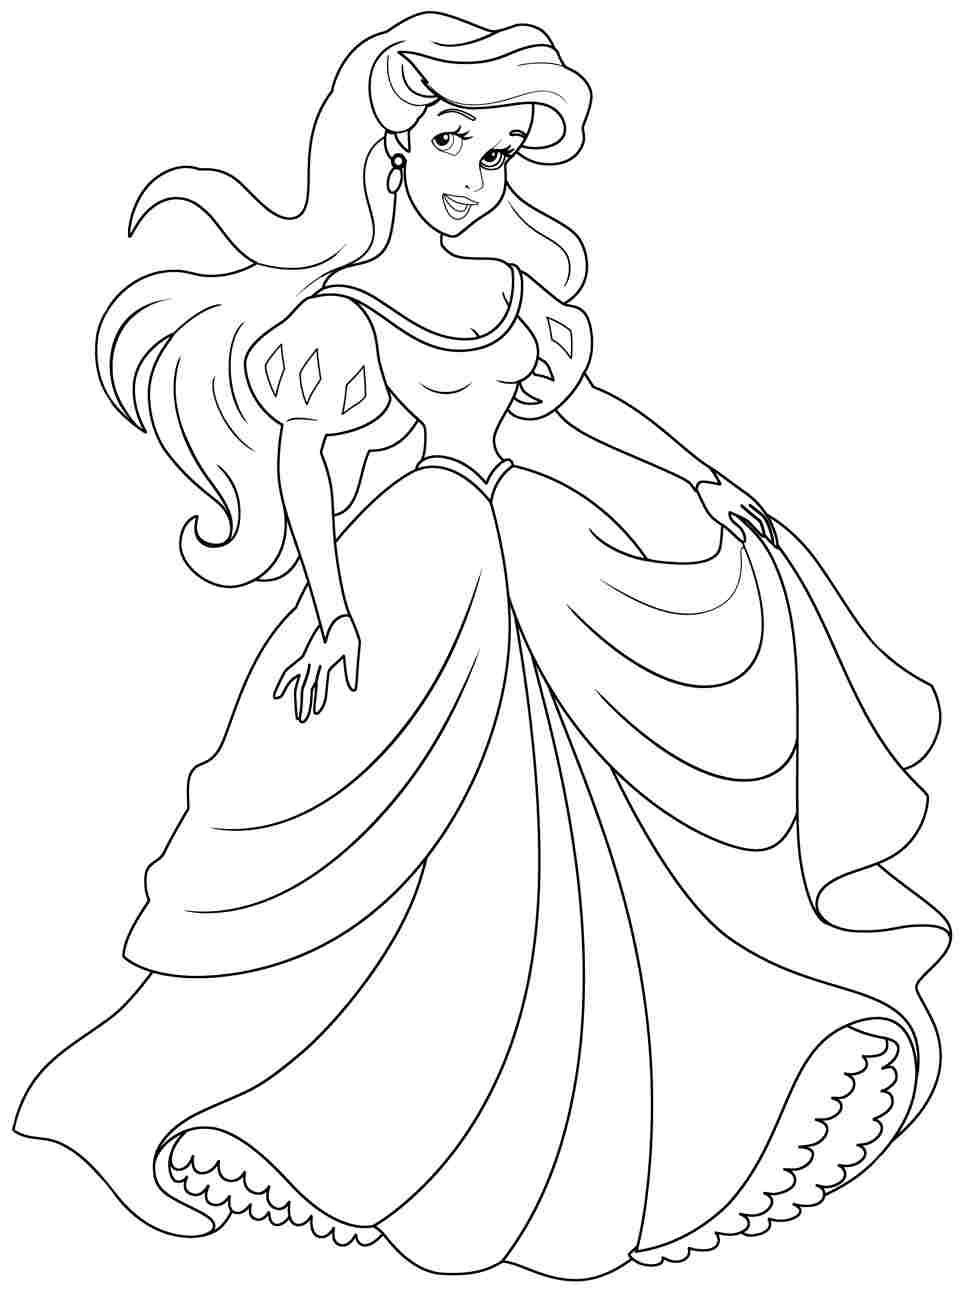 Princess Ariel Human Coloring Pages Printable And Book To Print For Free Find More Online Kids Adults Of